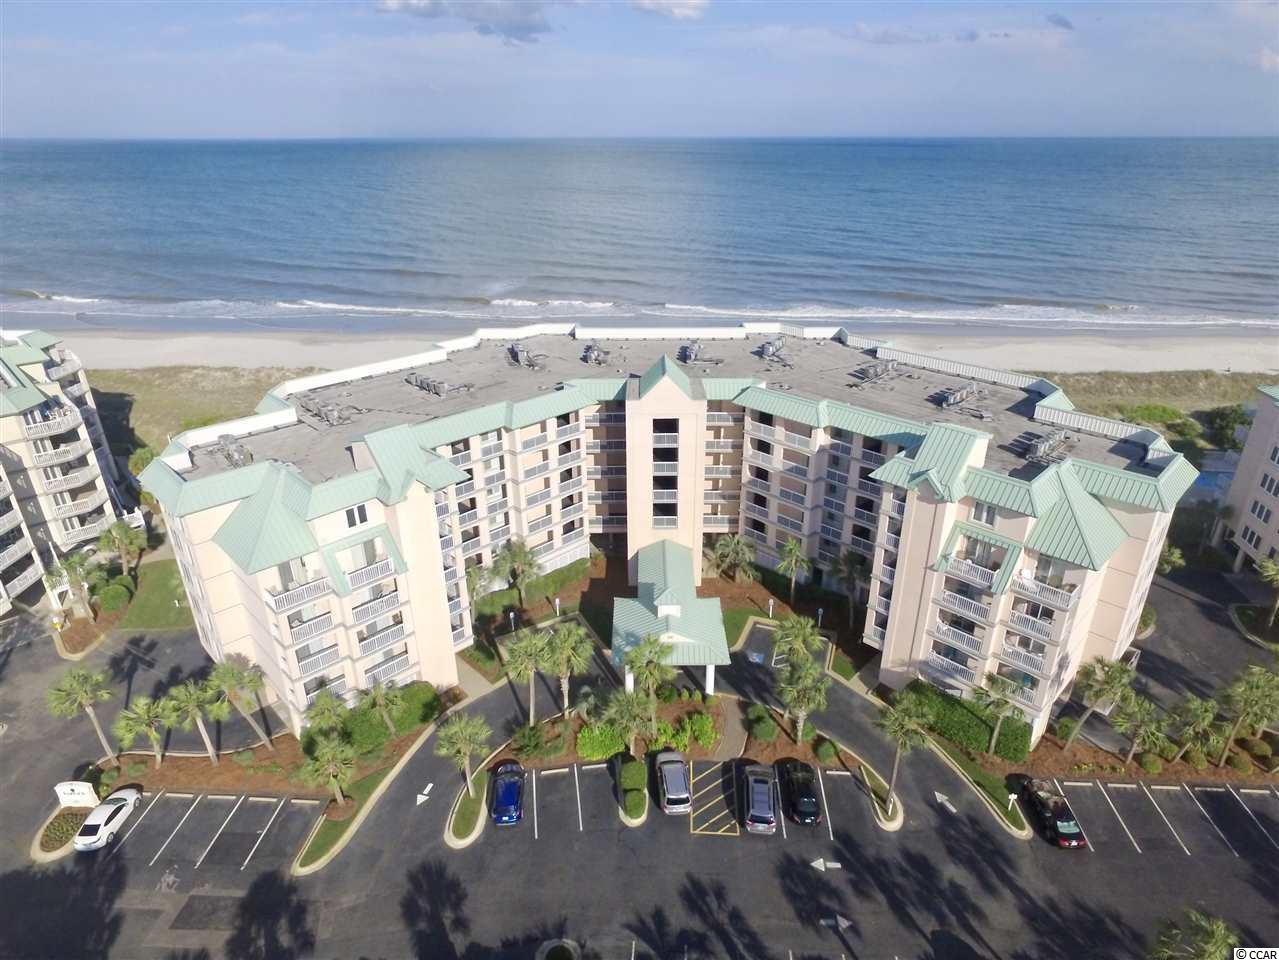 Beautiful oceanfront unit in the desirable Warwick building at Litchfield by the Sea. 3 bedrooms and 3 full baths with a large porch overlooking the beautiful Atlantic Ocean. With a fantastic location on the 1st floor, you have walk out access from your balcony to the pool and beach. This unit has plenty of room for entertaining guests and would also perform very well on a rental program. Owners and guests can enjoy resort amenities, such as the private pool, beach club, crabbing dock, recreational paths, tennis and on-site restaurant and bar.